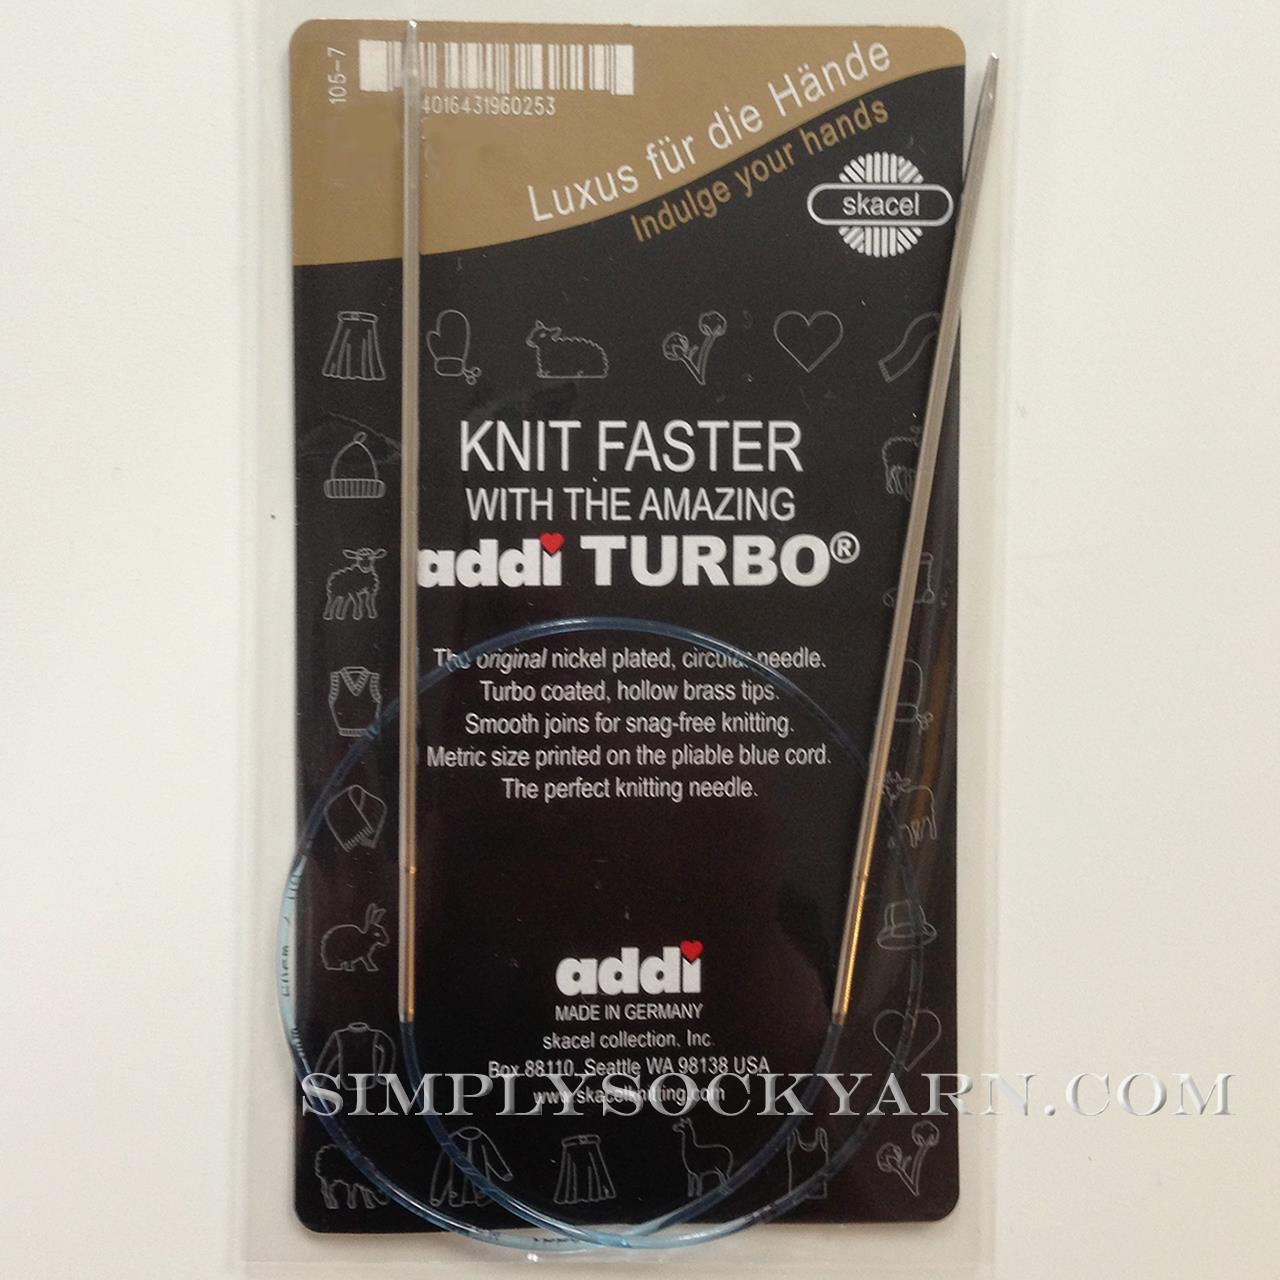 "Addi Turbo 40"" circ US 1"